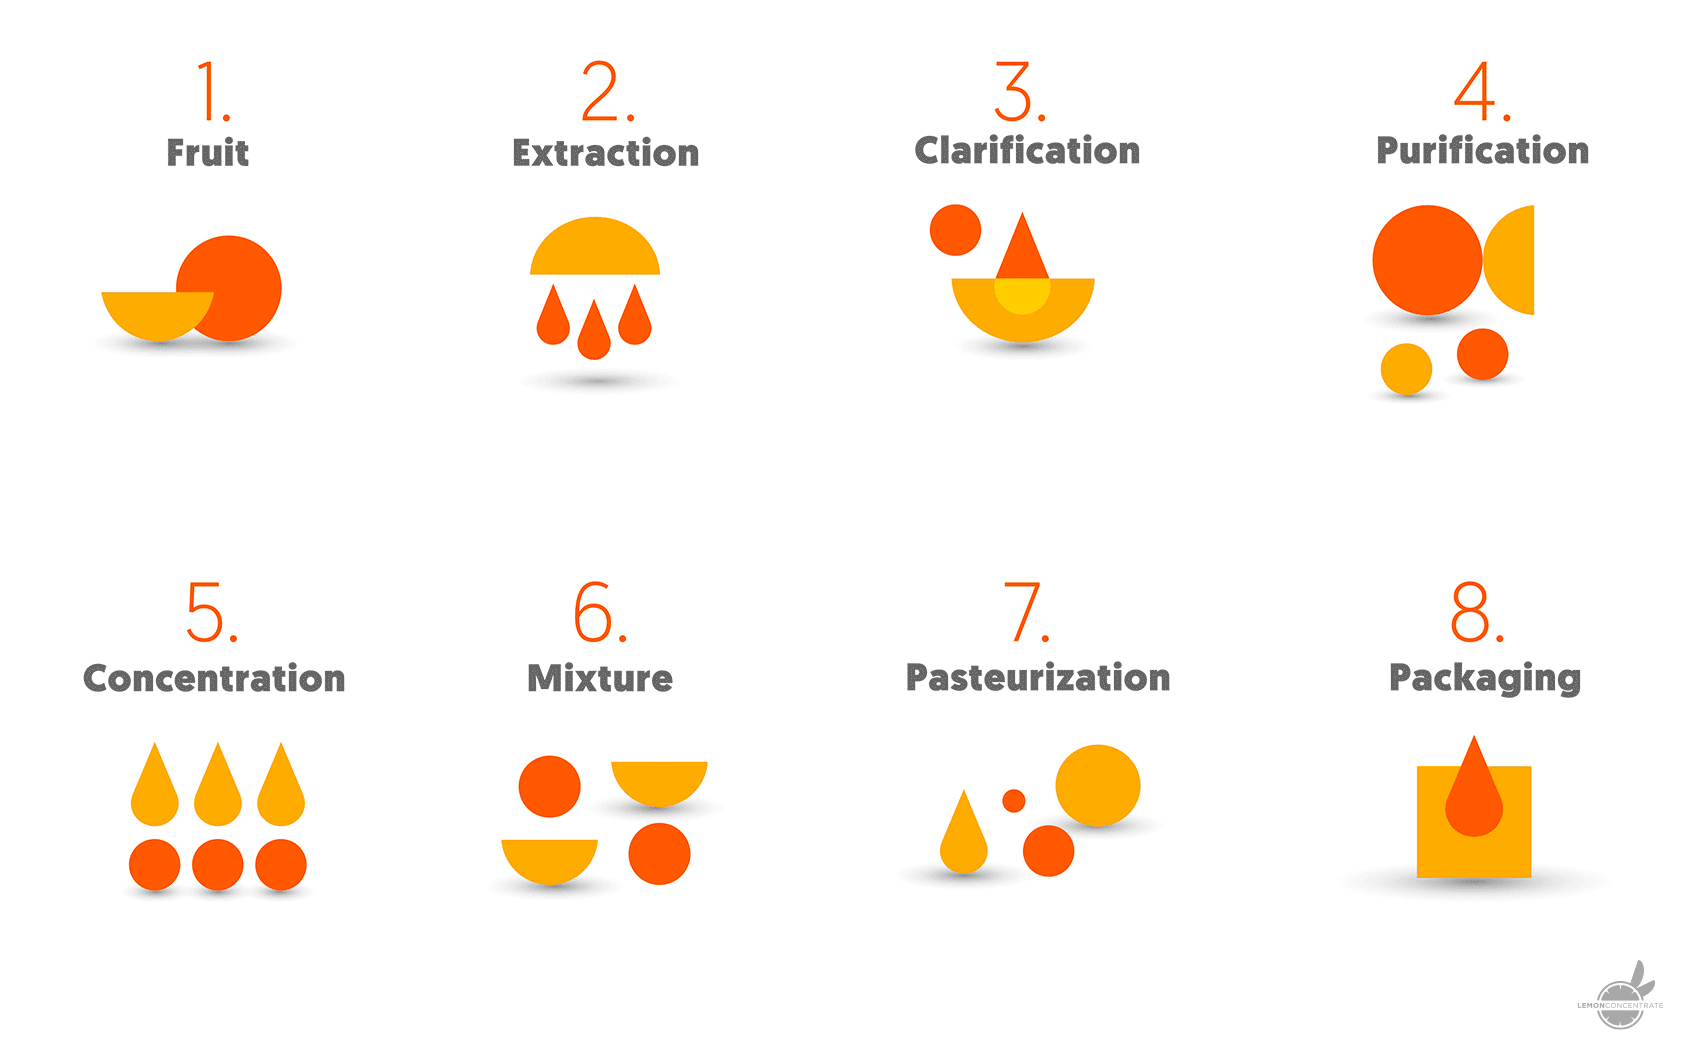 Deionized Juice An Alternative To Traditional Added Sugars Lemon Process Flow Diagram Orange The Fruit Extract Is A Liquid In Form Of Concentrated Syrup Containing Dry Matter 65 70 With High Viscosity